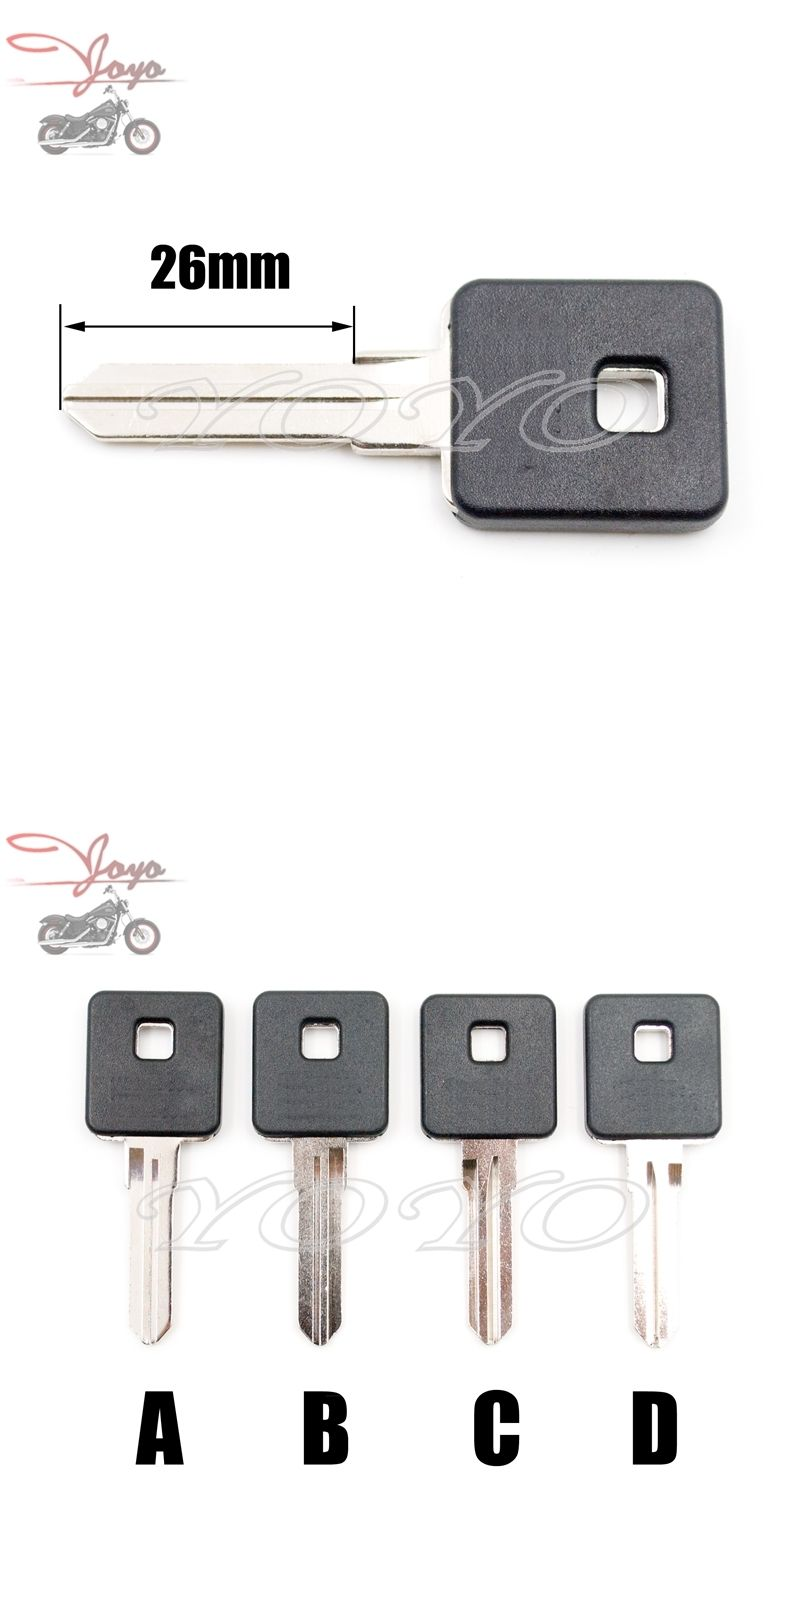 Harley Davidson Ignition Key Number 99 Nissan Altima Wiring Diagram New Replacement For Sportster Xl 883 1200 Xr1200 48 72 Motorcycle 1